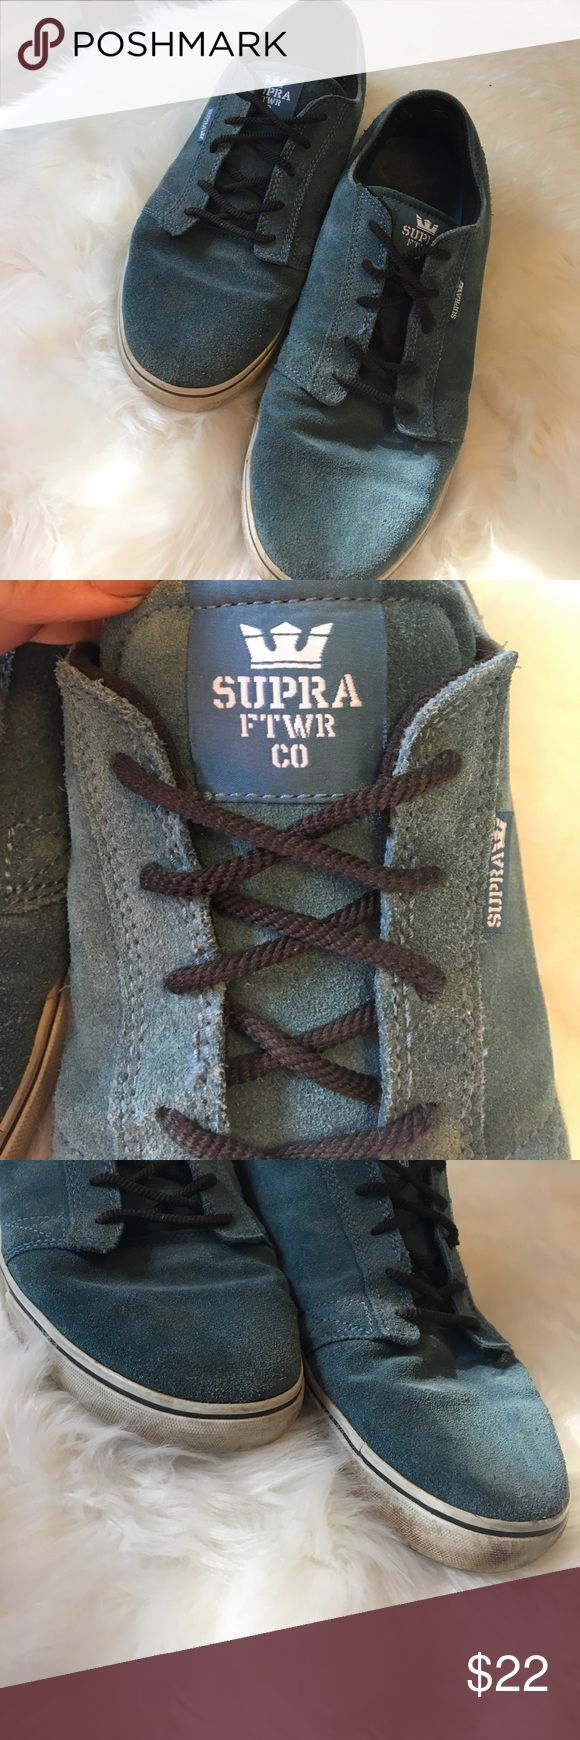 Blue Supra sneakers Worn a lot in good condition just need a wash as you can see from the photos, very comfy Supra Shoes Sneakers